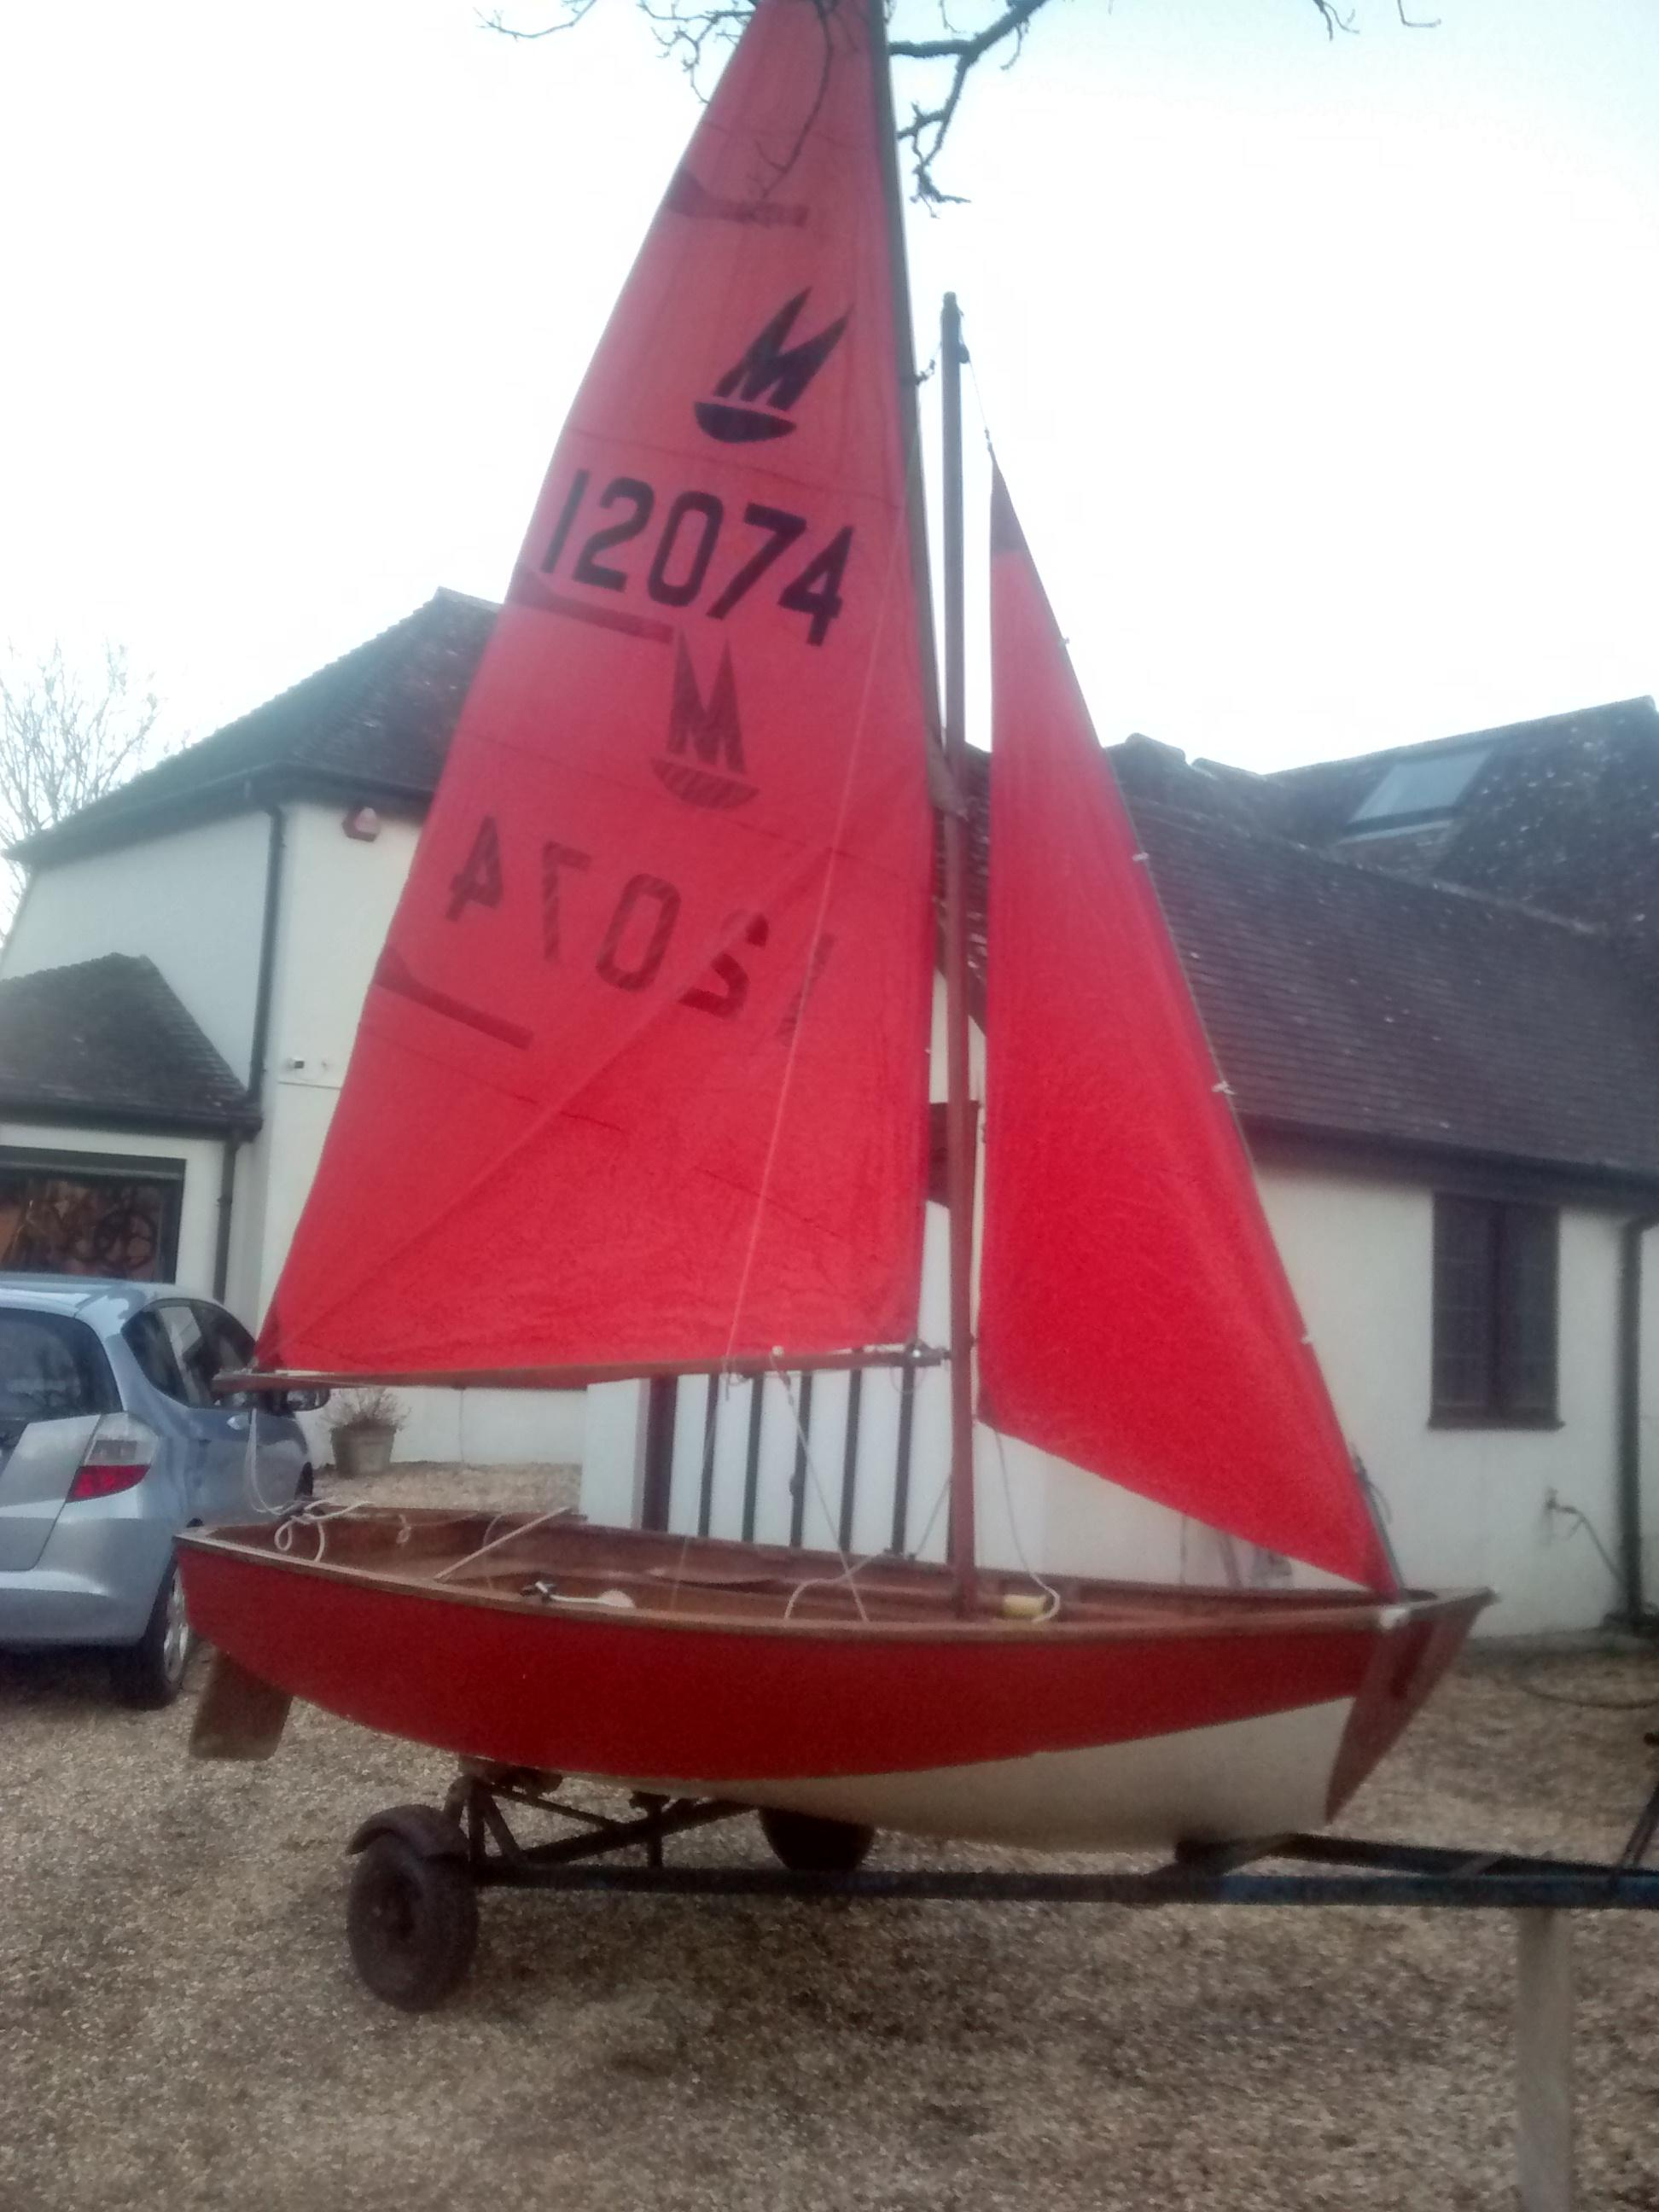 A red wooden Mirror dinghy rigged in a driveway